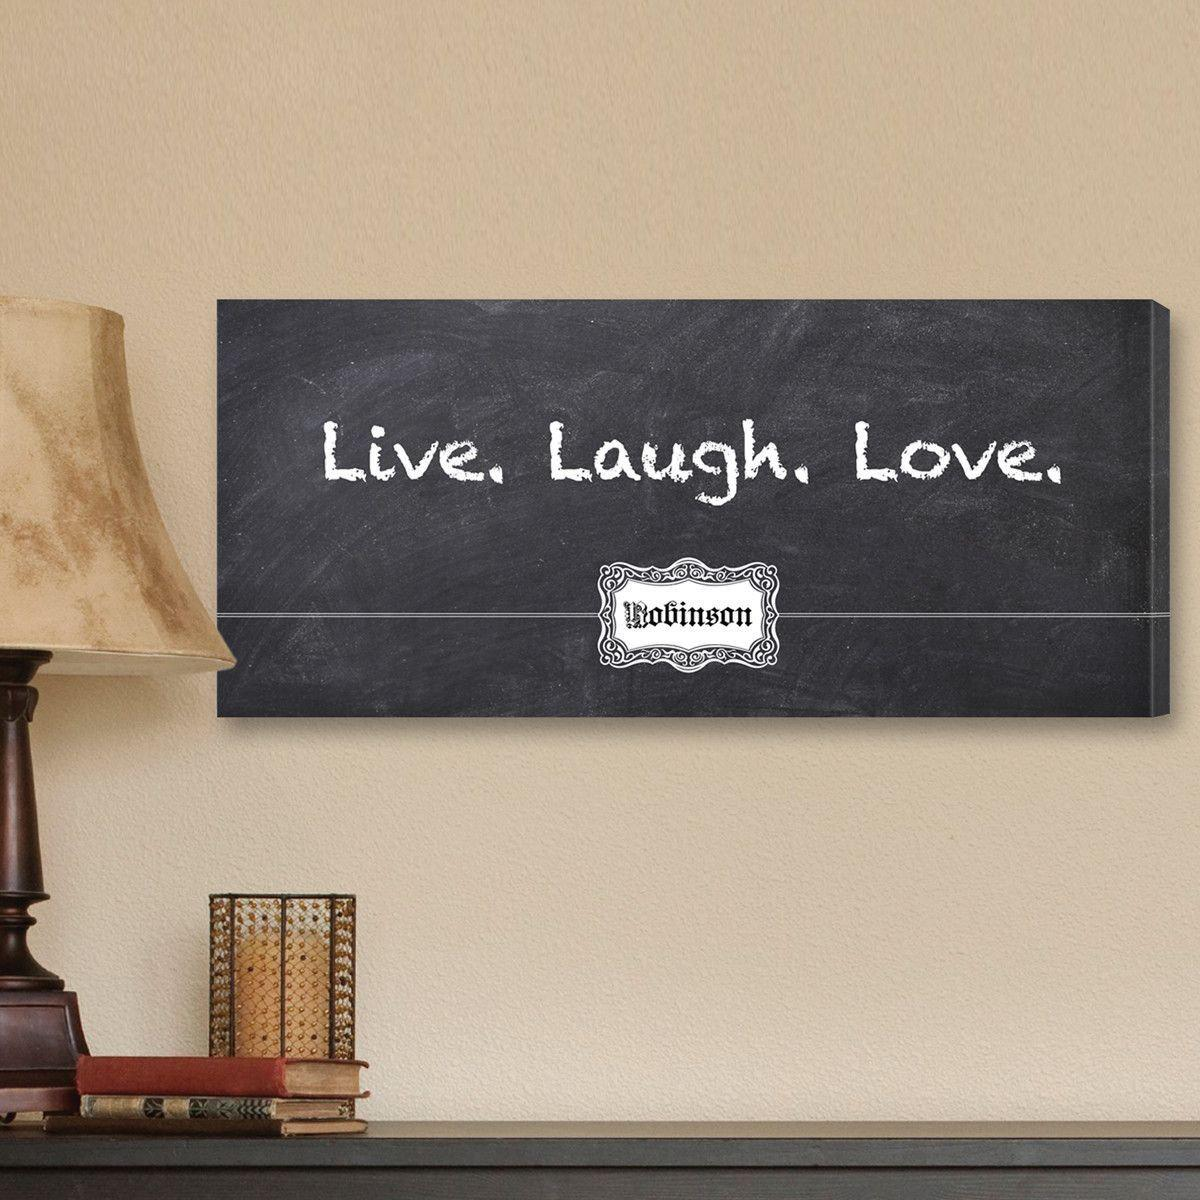 Personalized-Canvas-Sign-3-Ls-Blackboard